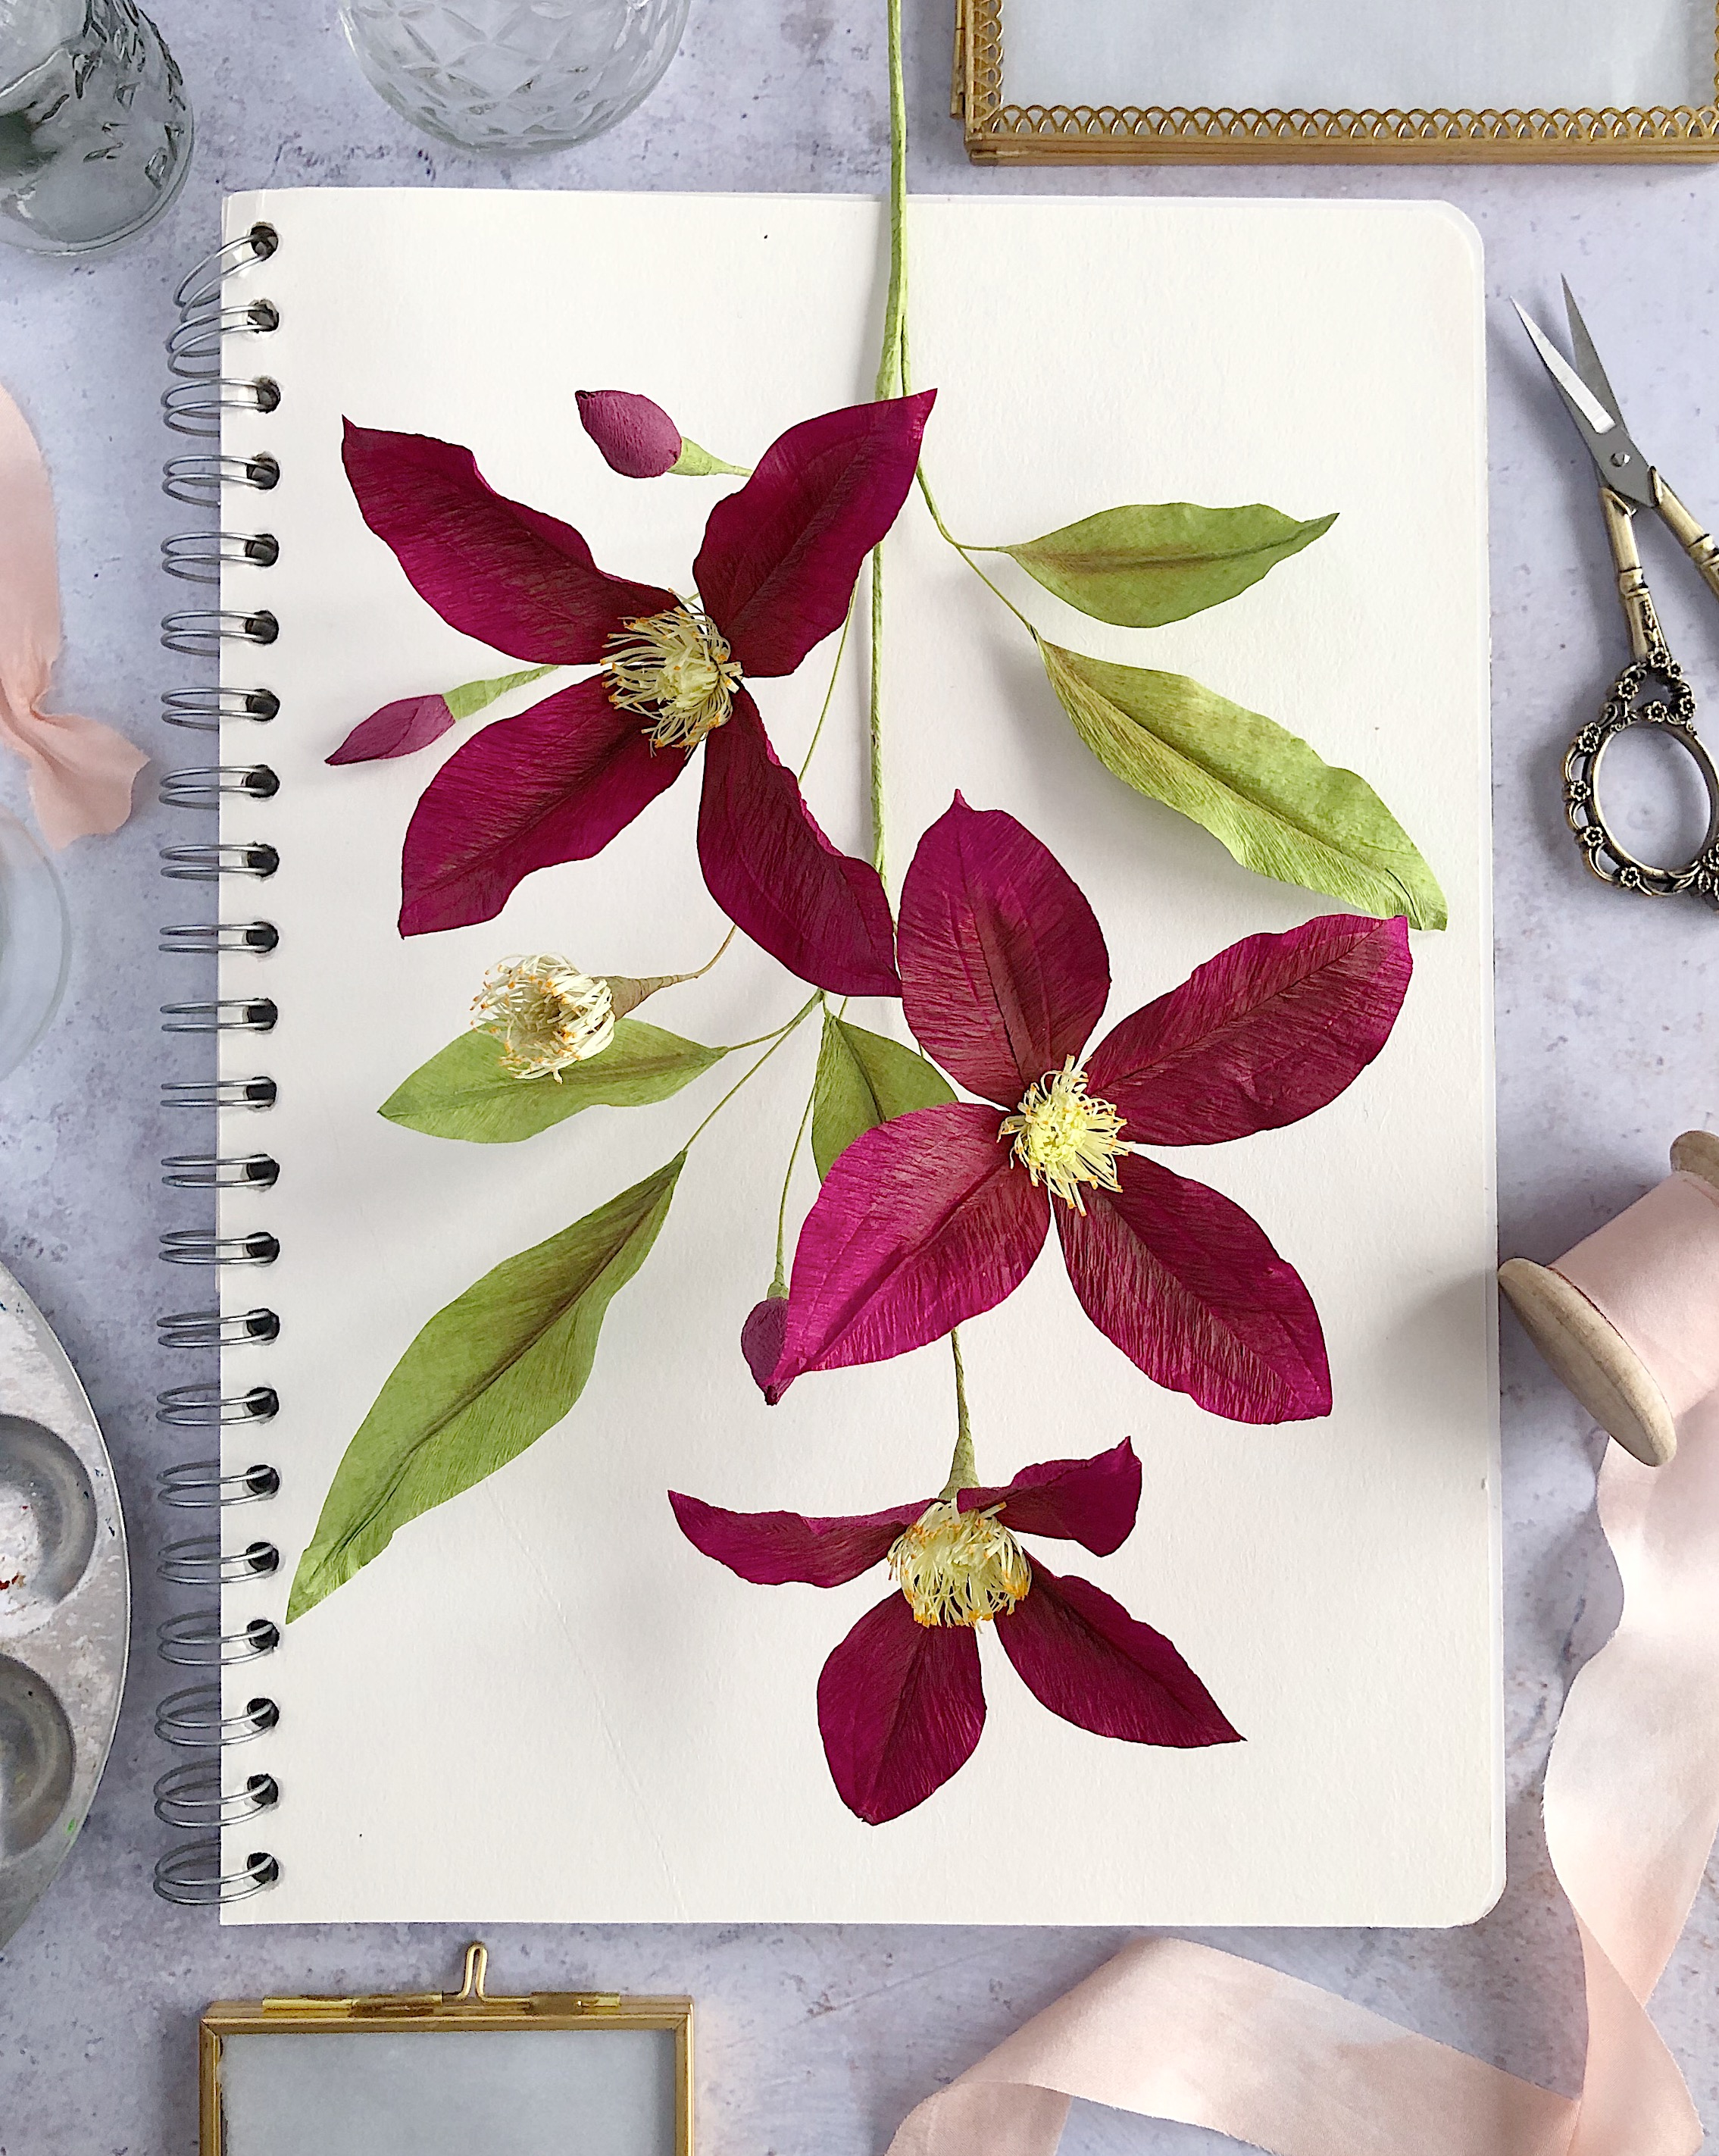 Paper Burgundy Clematis by Crafted to Bloom.jpeg